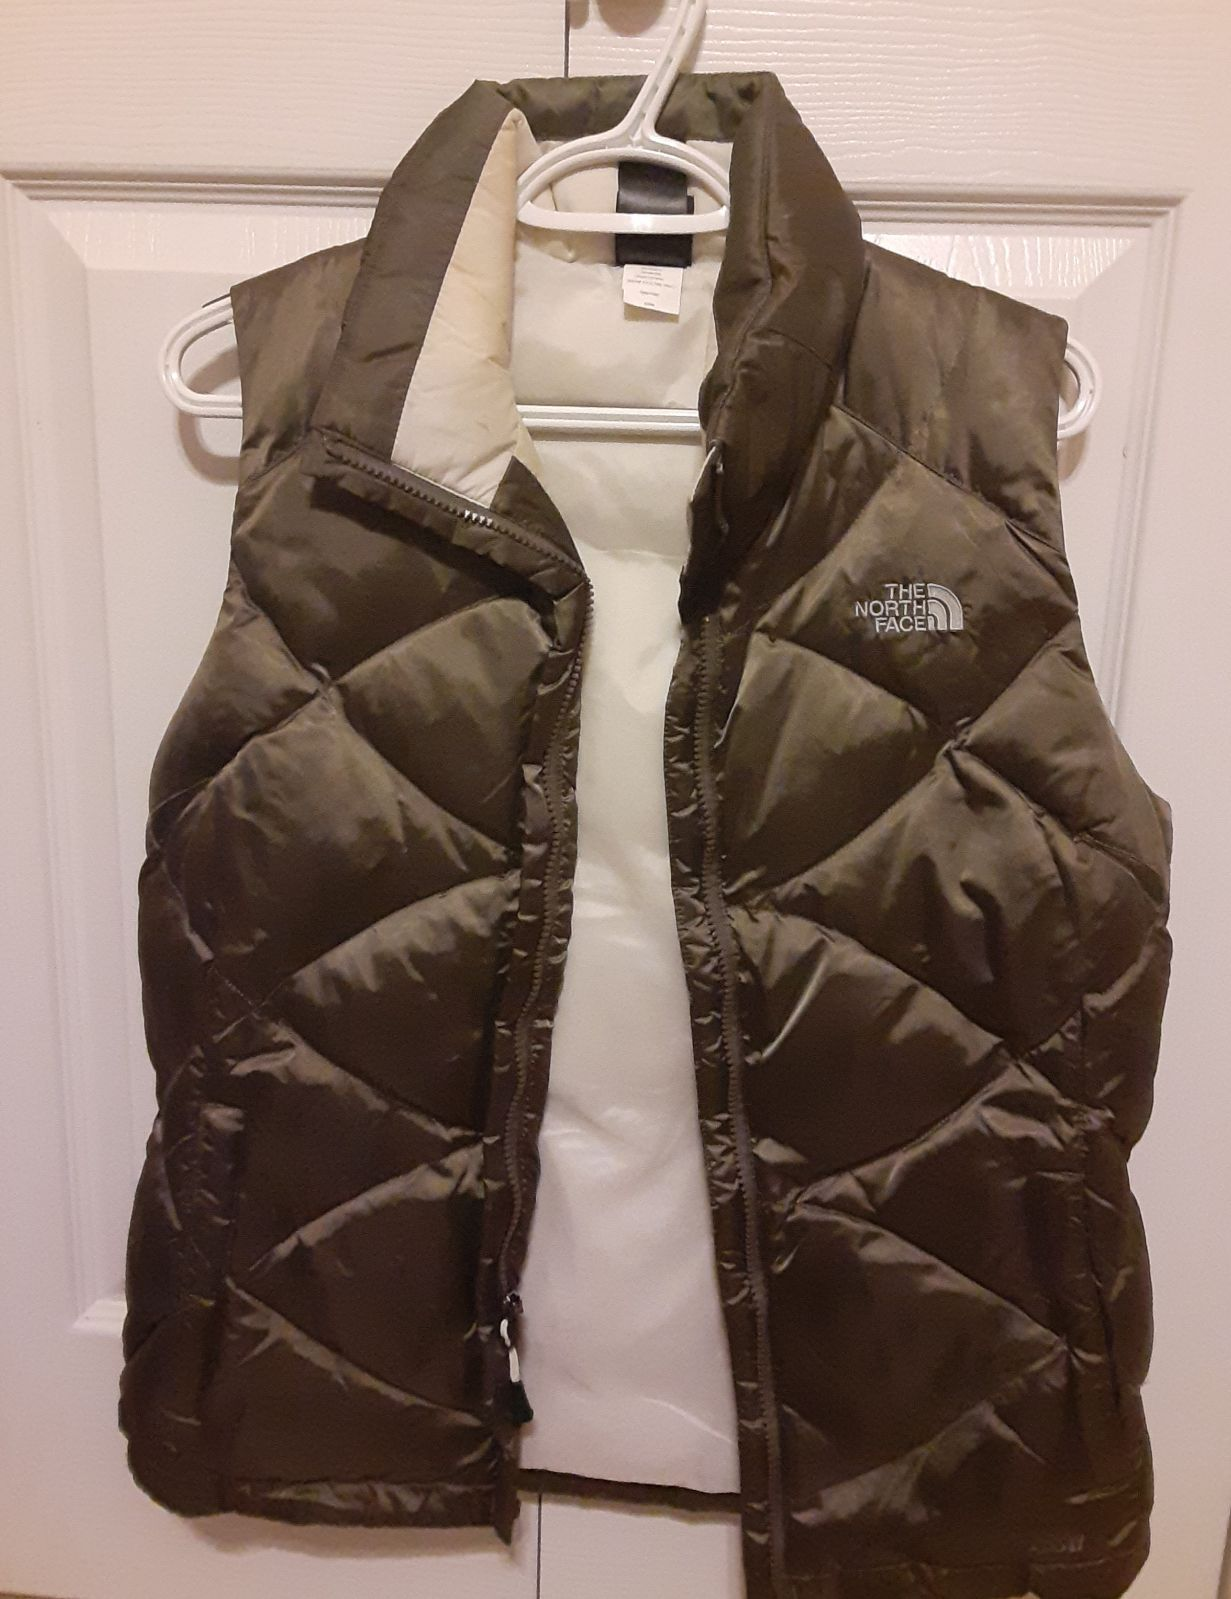 Green And Tan North Face Down Vest Very Warm And Stylish In Excellent Condition North Face Womens Coat North Face Women North Face Vest [ 1599 x 1231 Pixel ]